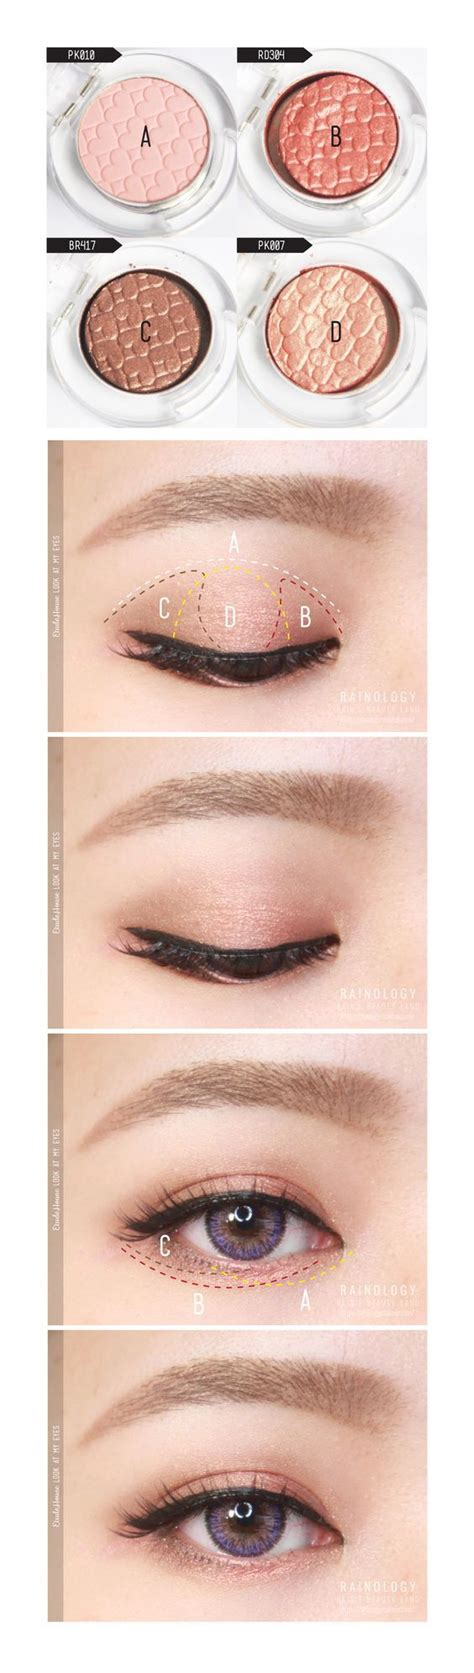 Hdtv Applied To Make Up by 25 Best Ideas About How To Apply Eyeshadow On